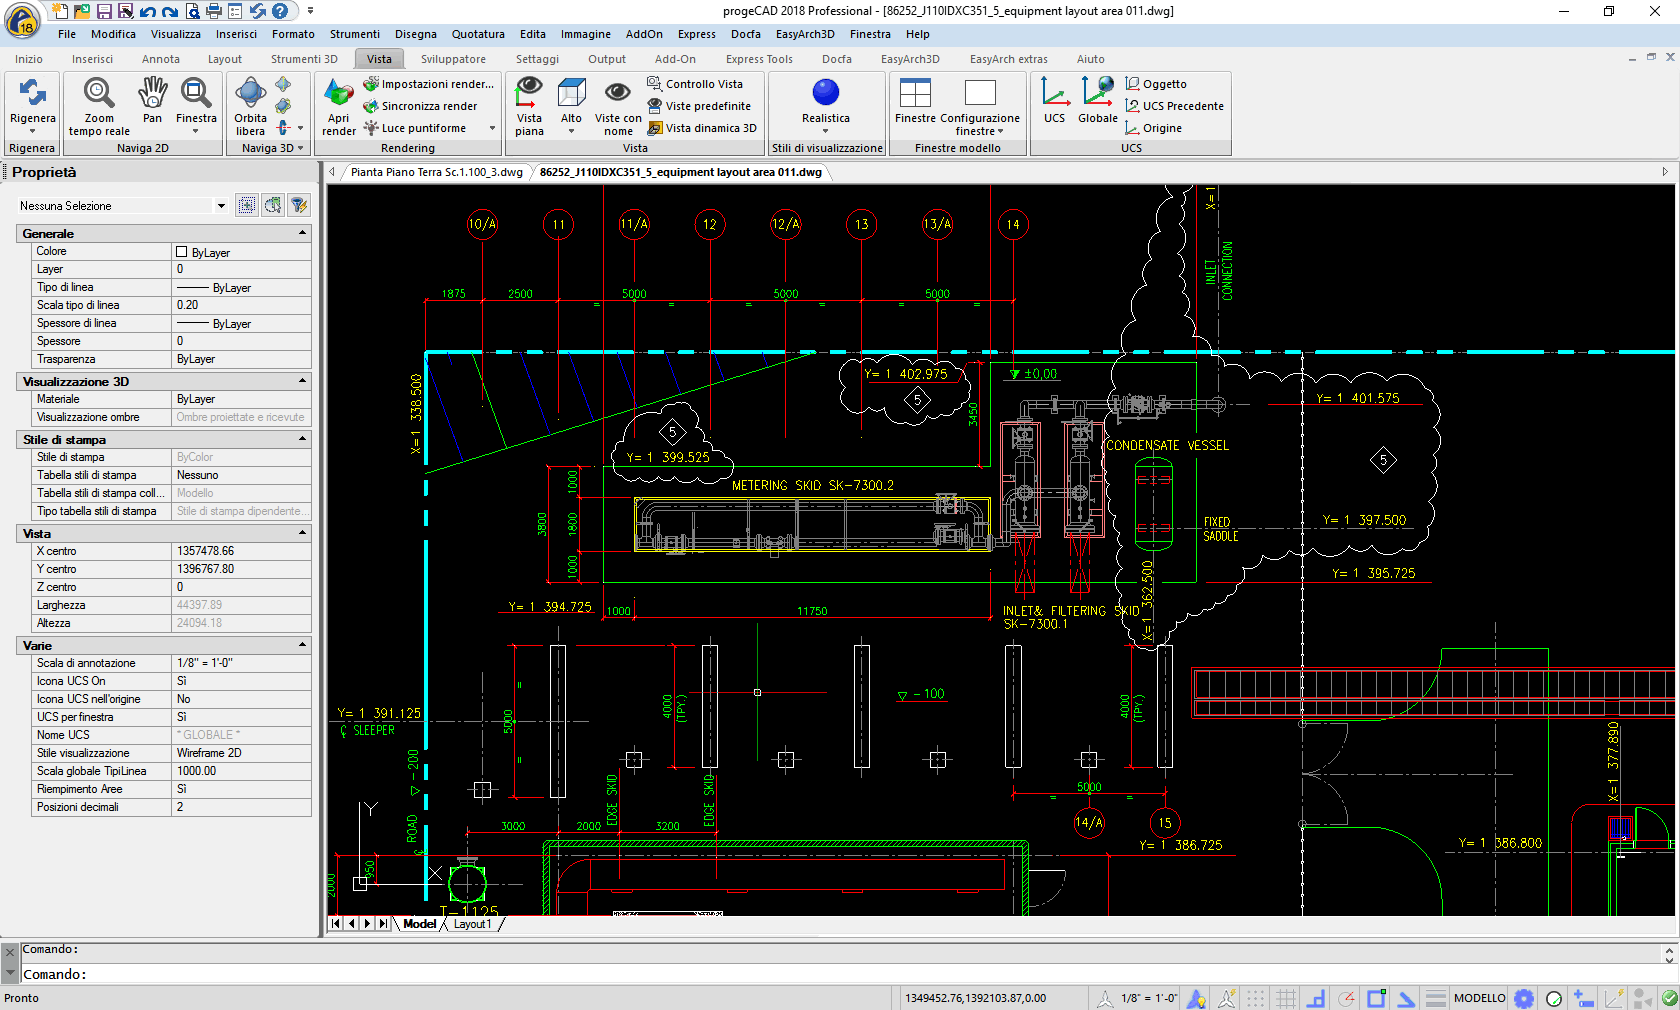 progecad software dealer